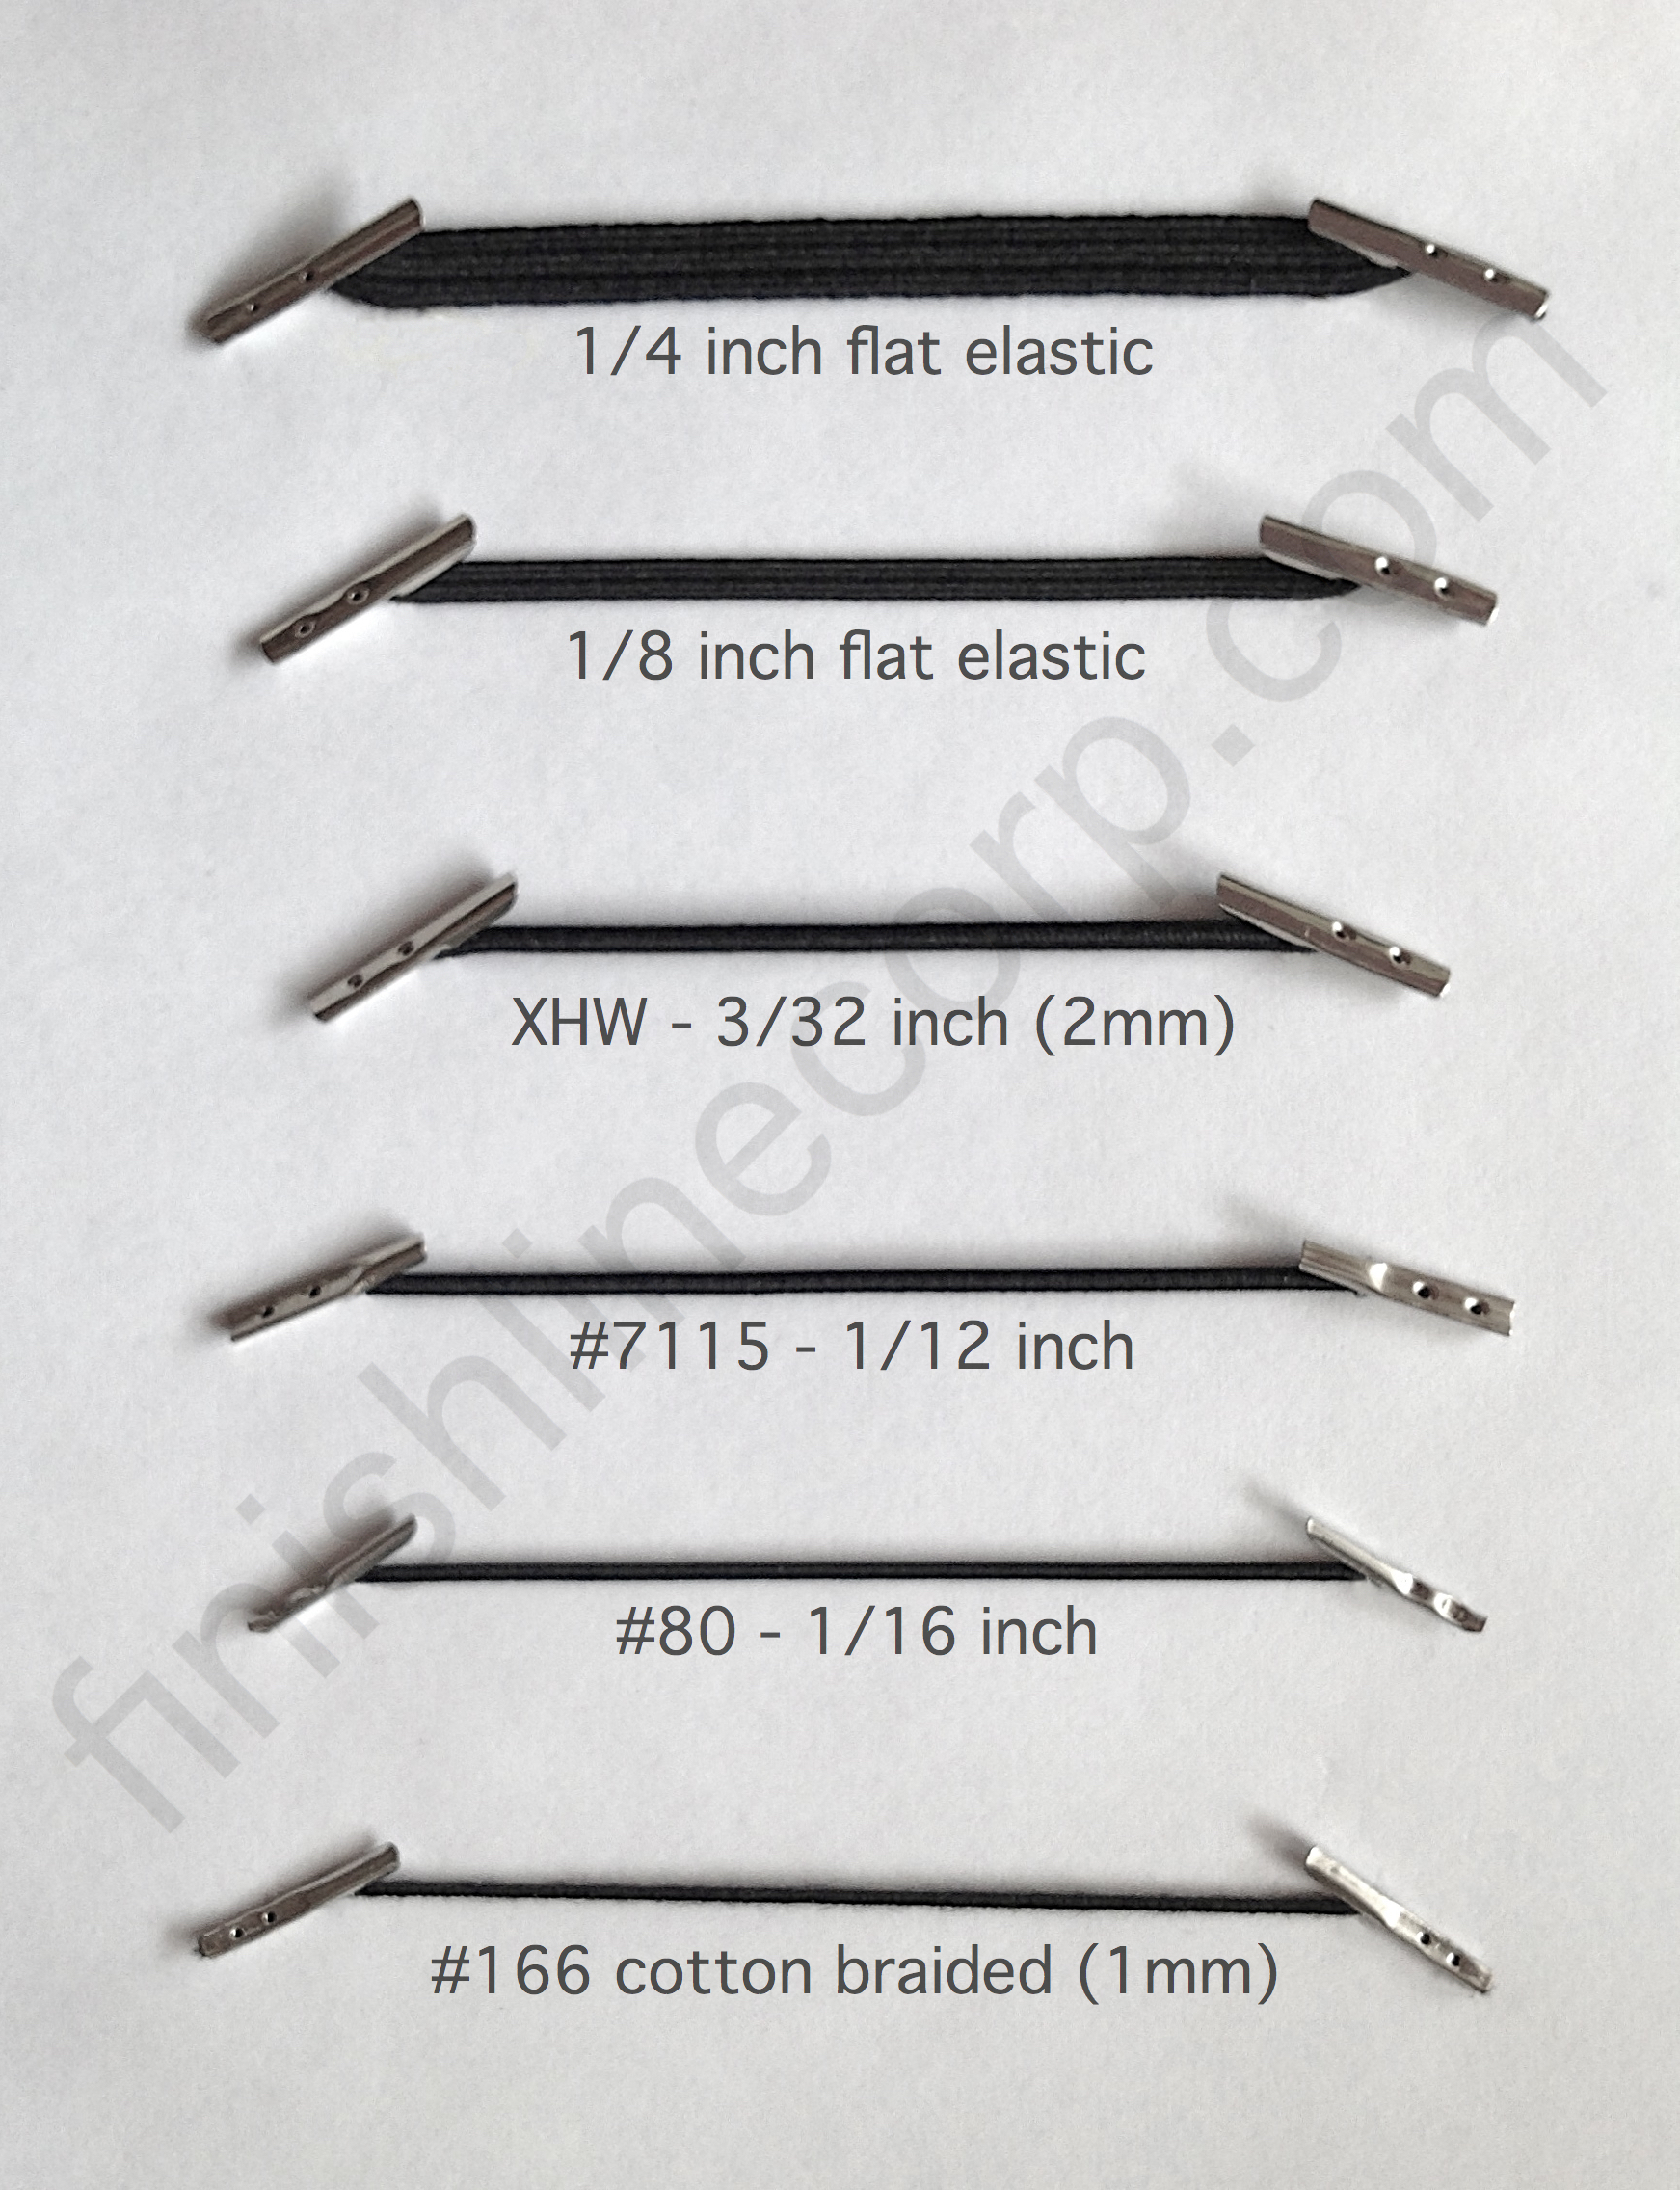 View barbed elastic cord sizes